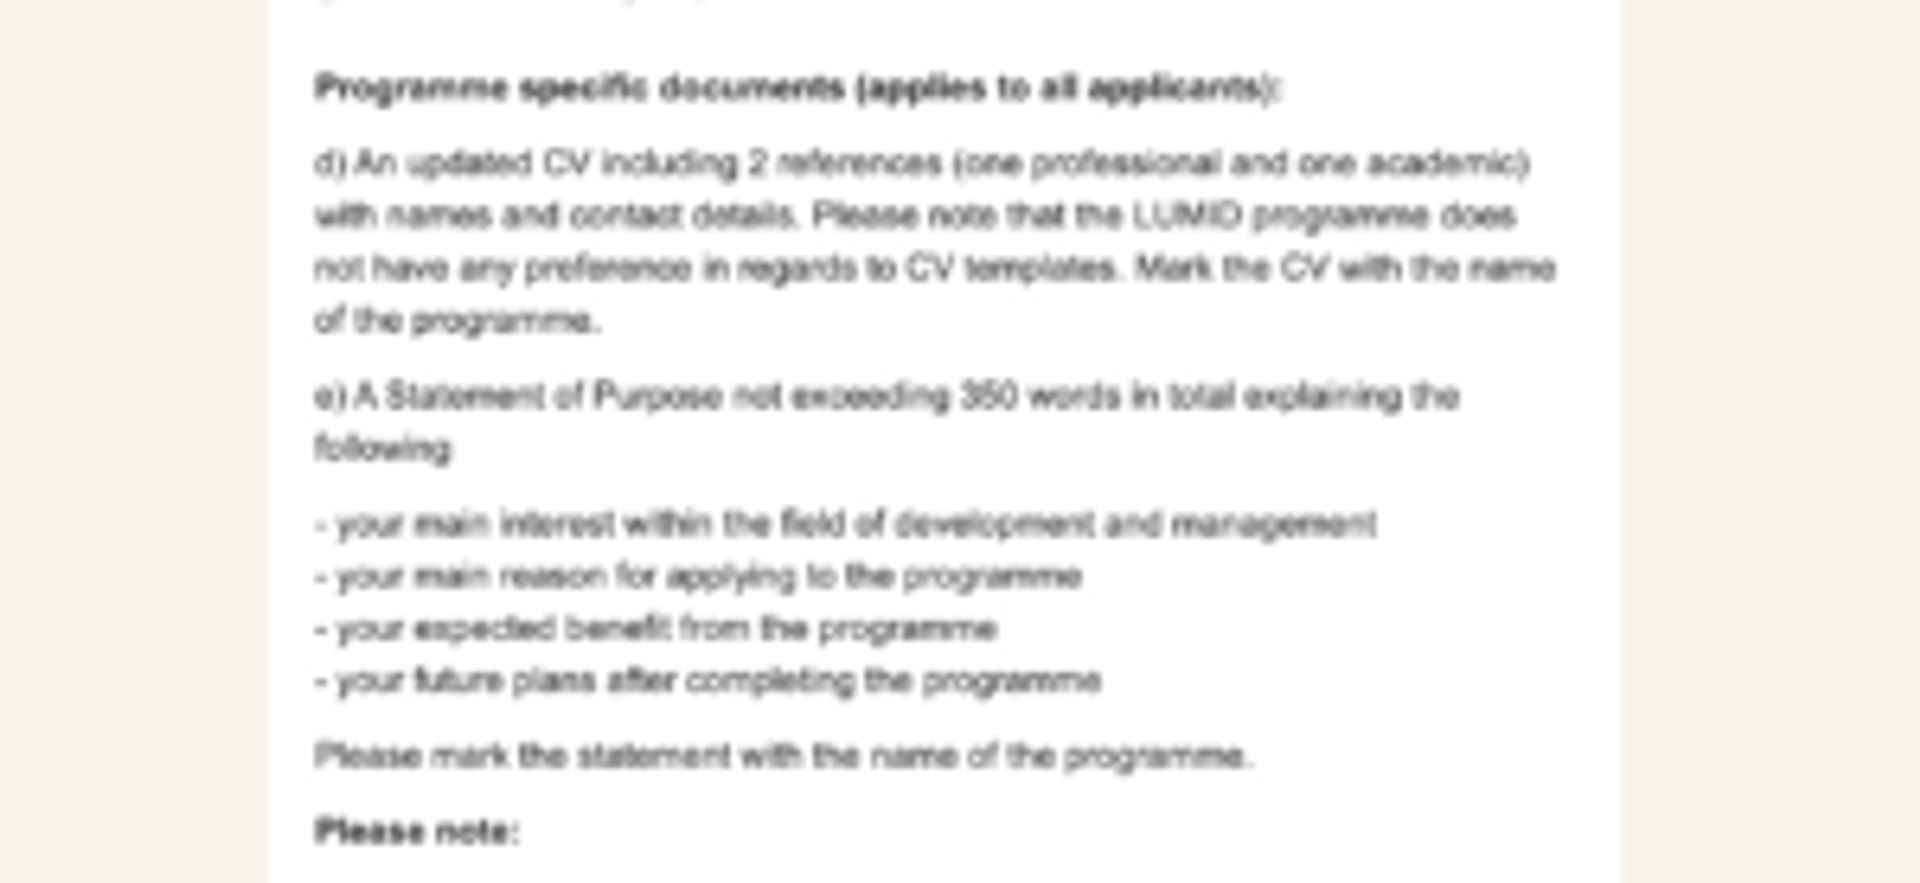 Screenshot of questions listed on a personal statement form.